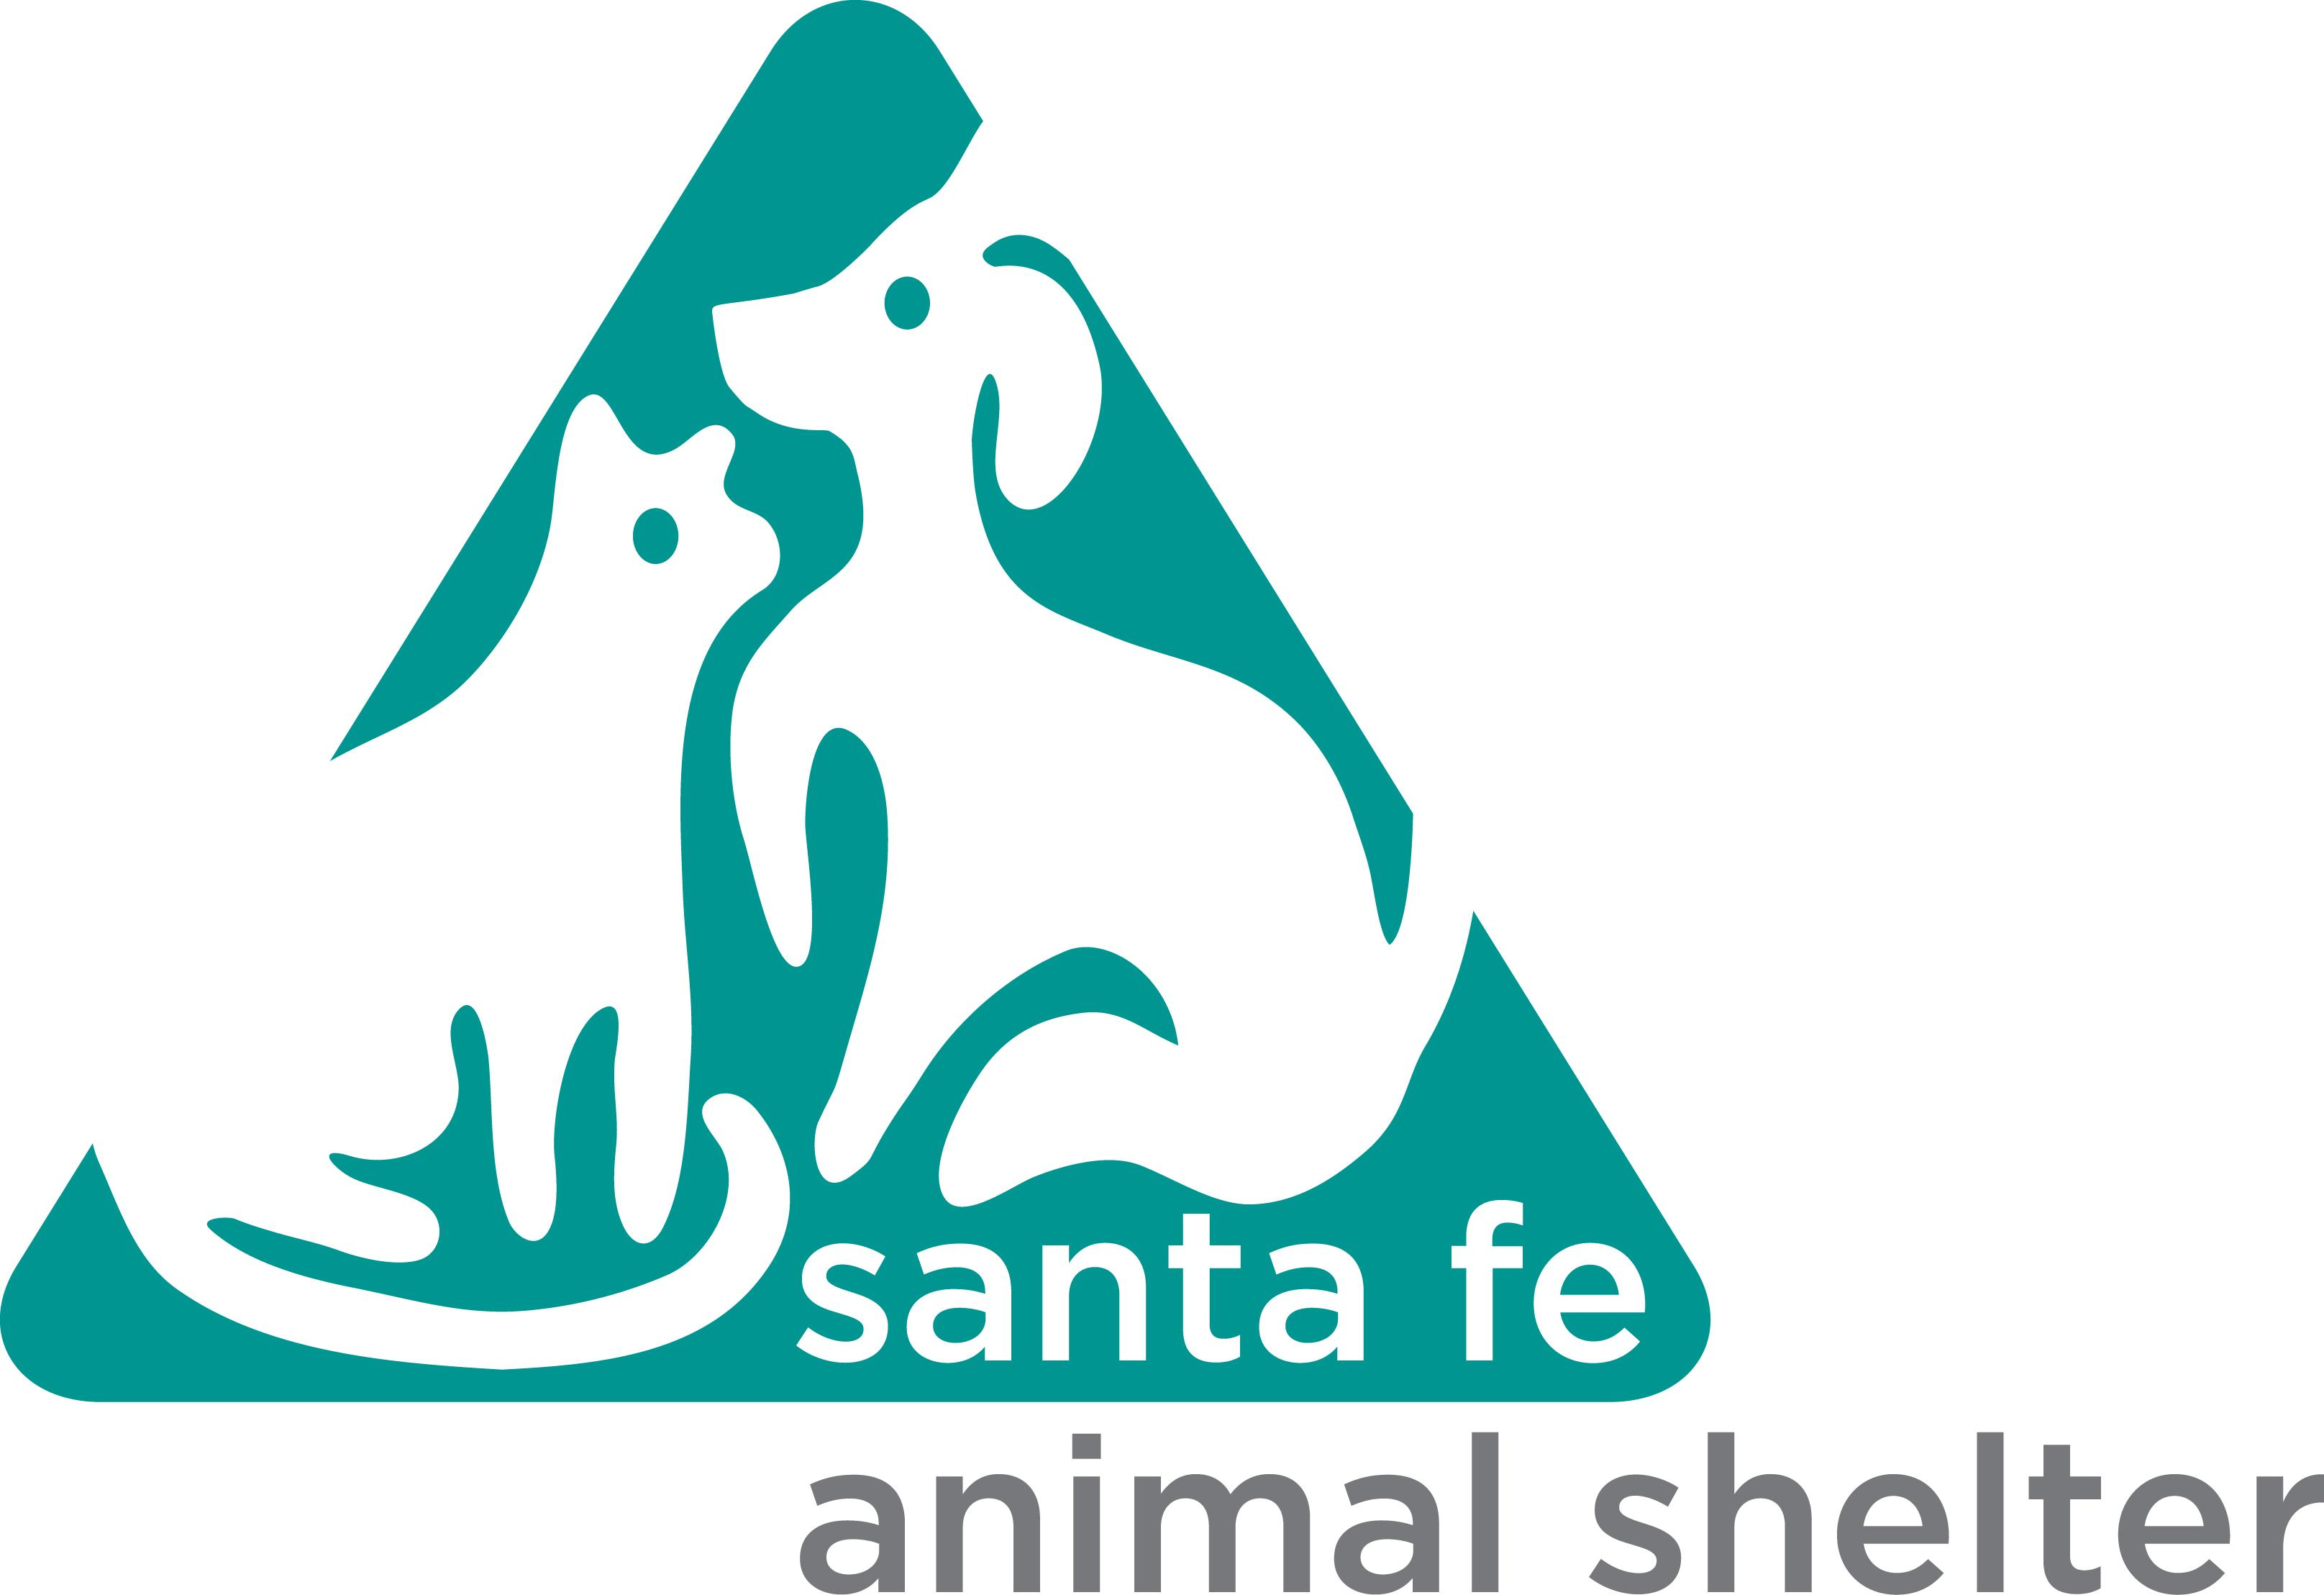 Santa Fe Animal Shelter & Humane Society